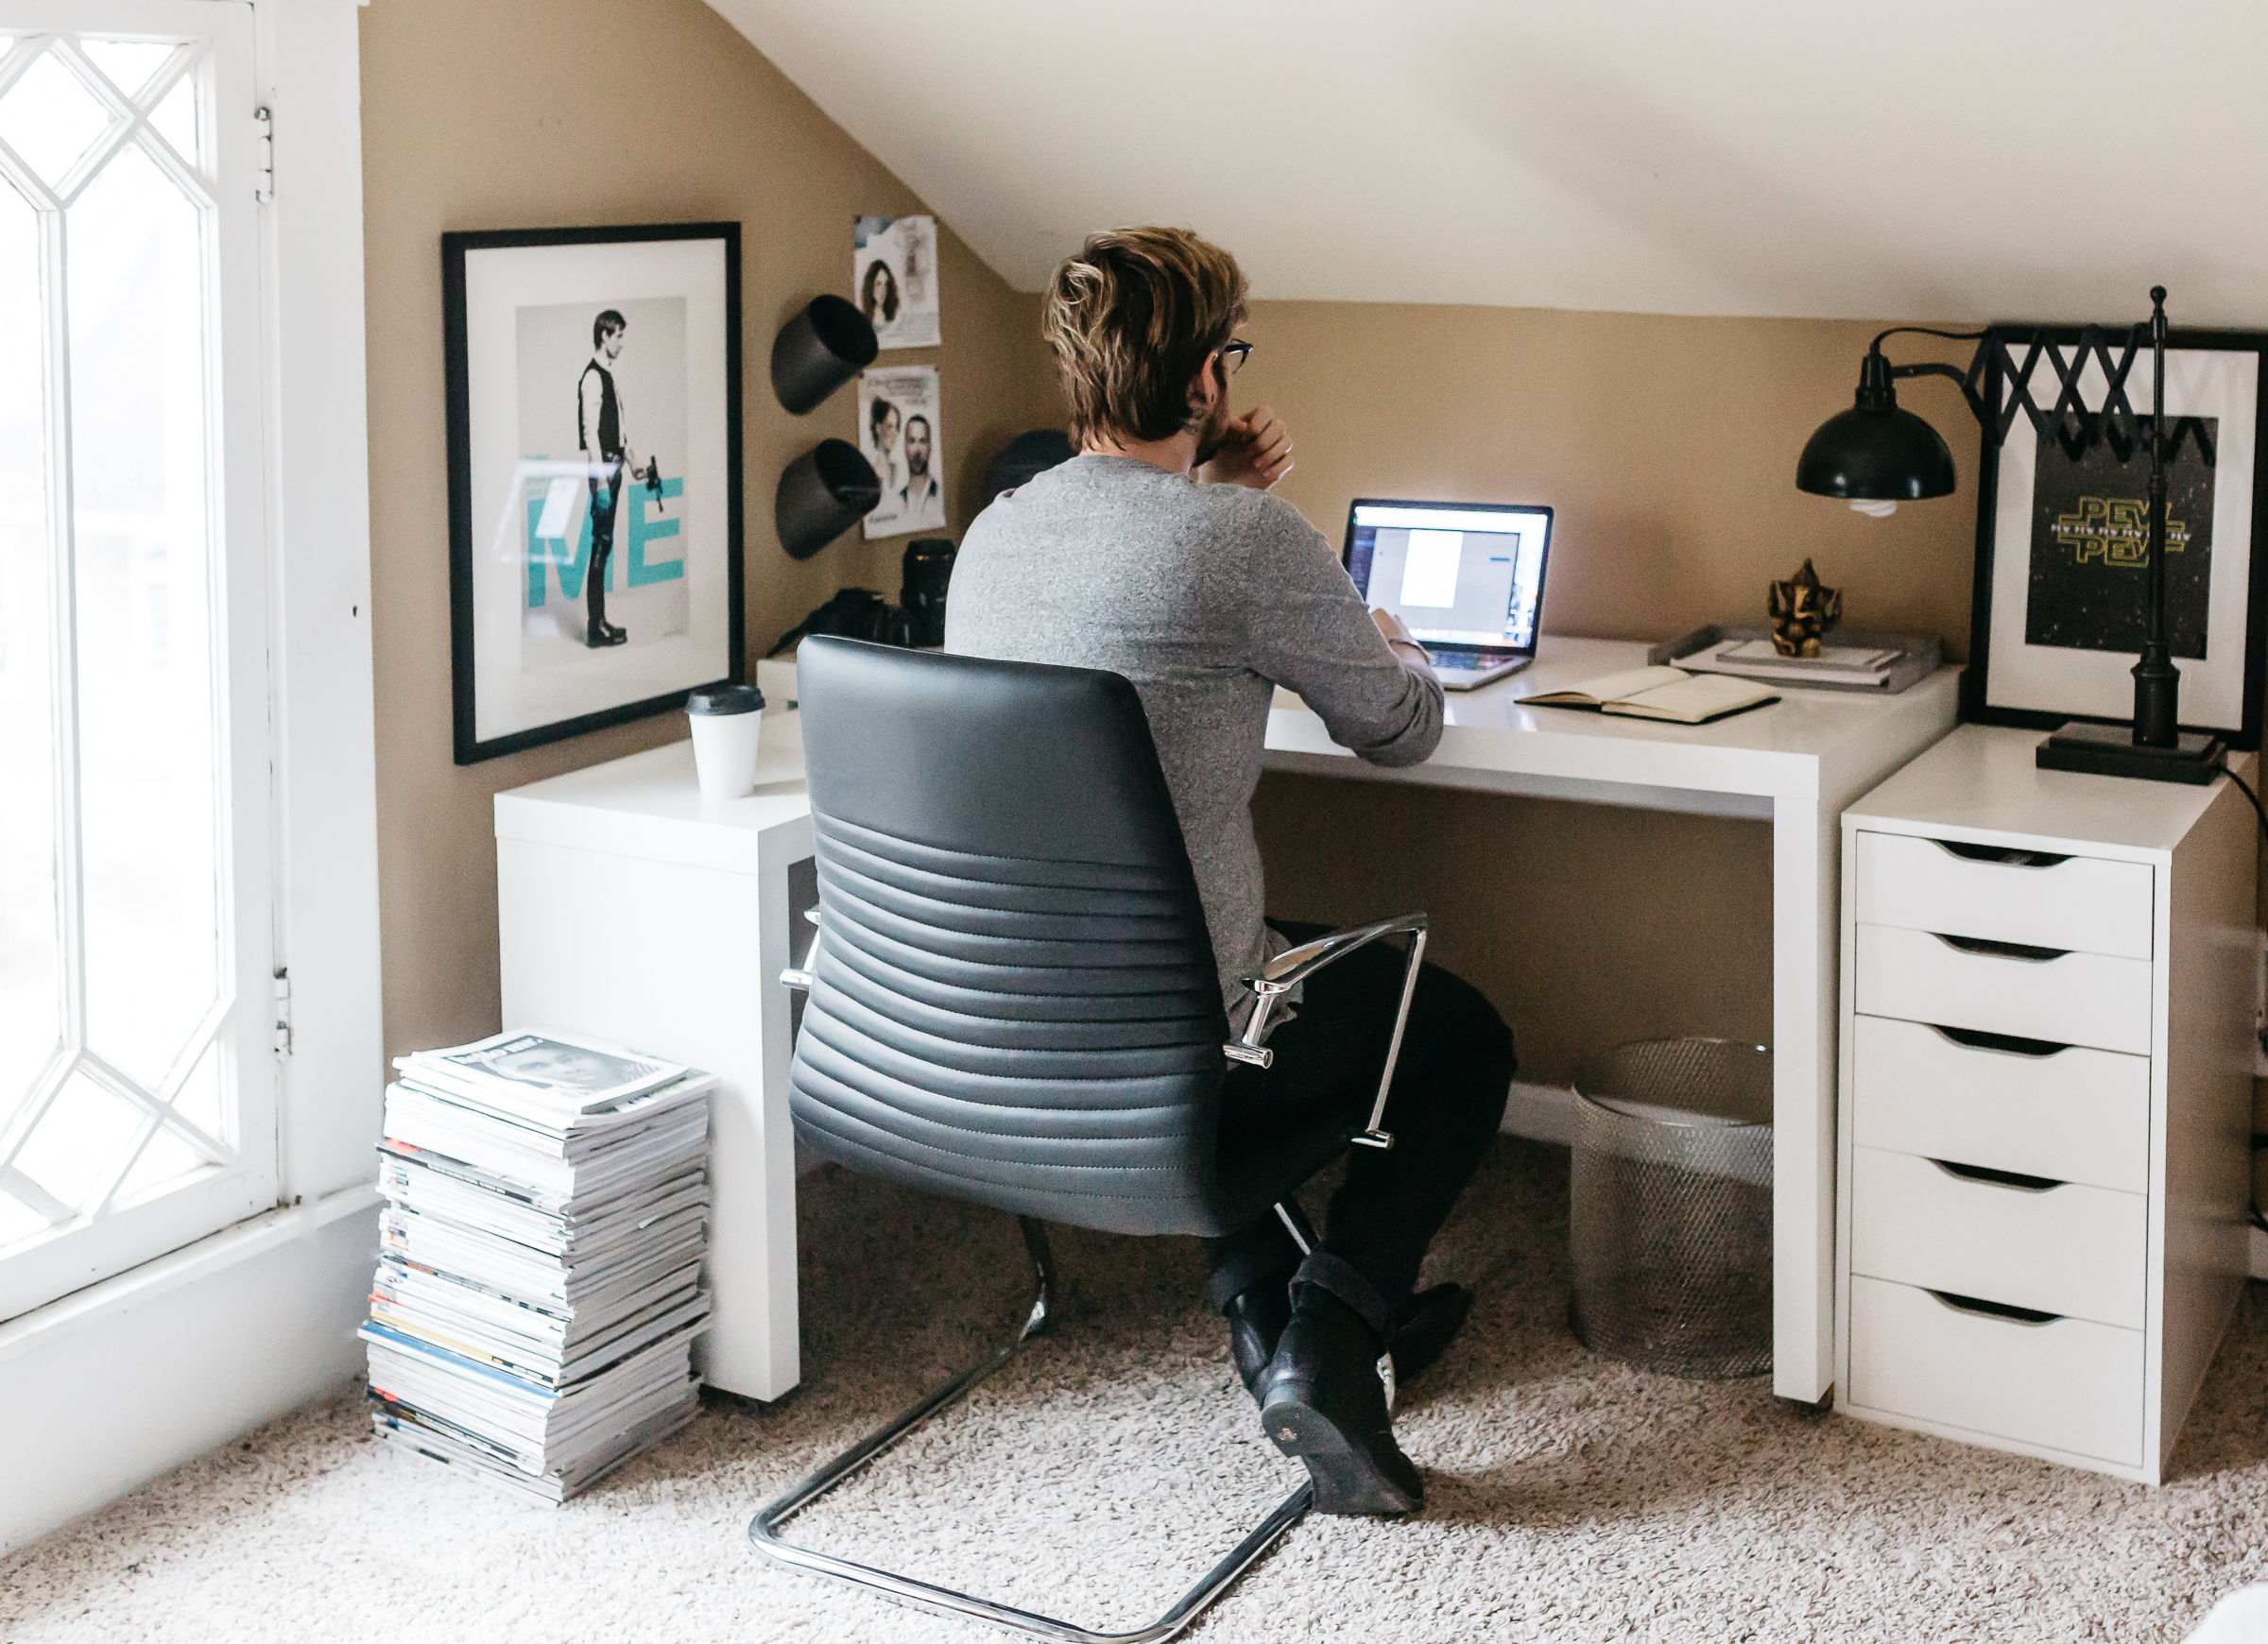 Blogger Home Office | Havenly Design | The Kentucky Gent